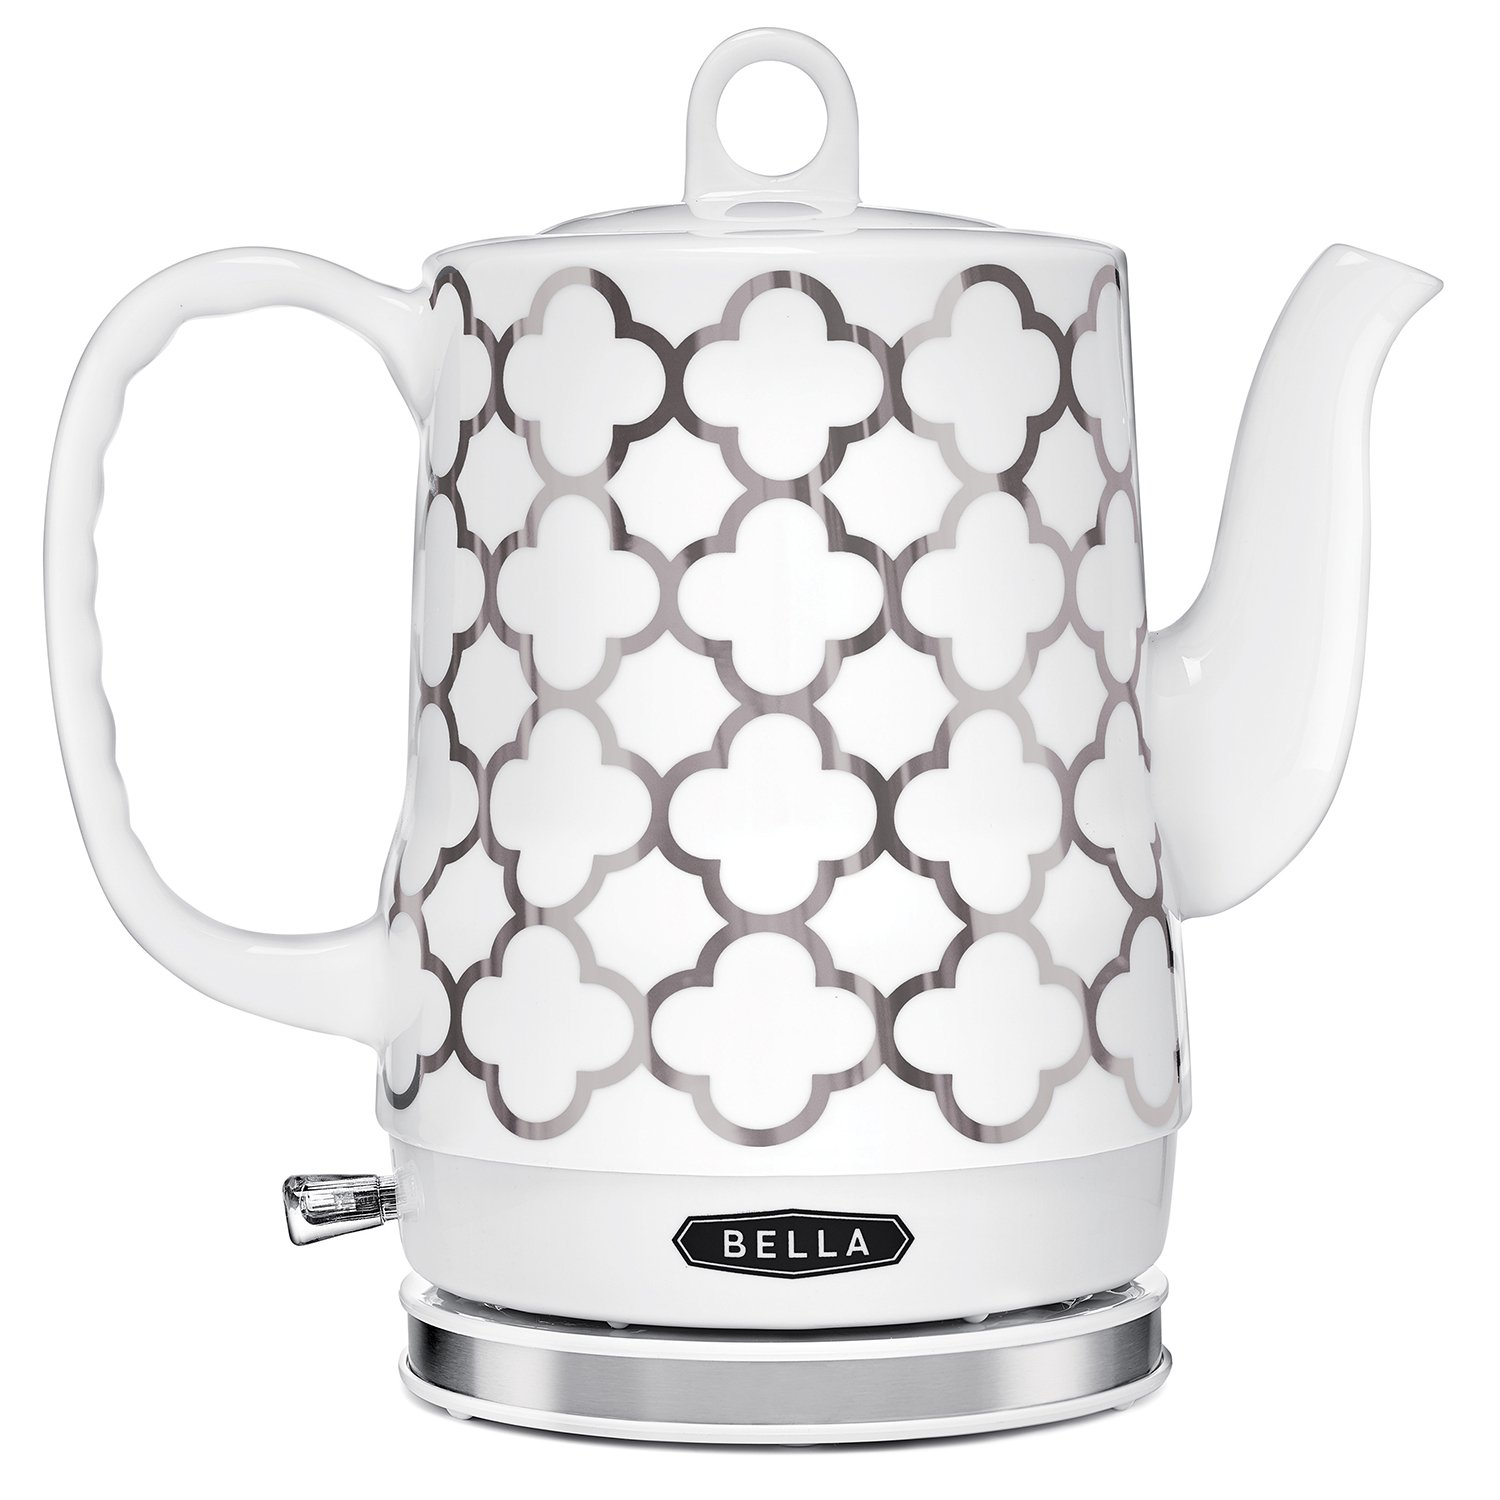 BELLA 1.2L Electric Ceramic Tea Kettle with Detachable Base & Boil Dry Protection (14522) Electric Tea Kettle with Automatic Shut Off & Detachable Swivel Base